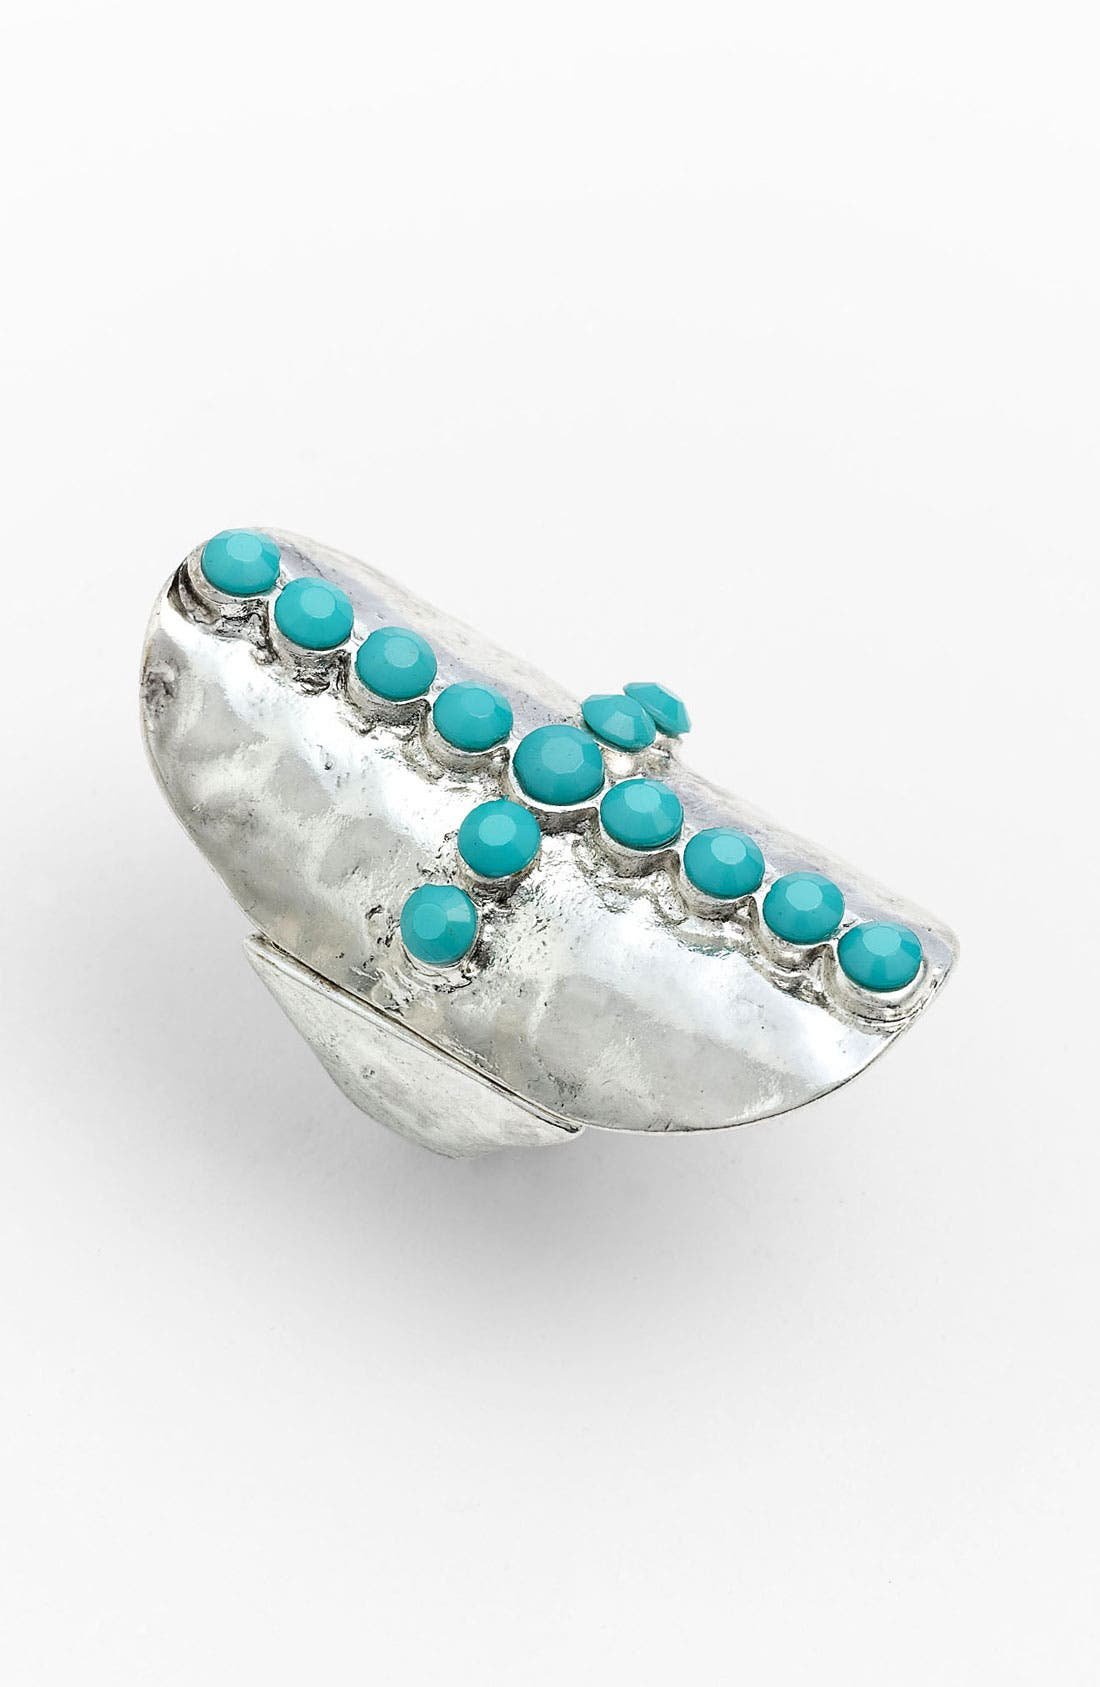 Alternate Image 1 Selected - Carole Turquoise Rhinestone Cross Shield Ring (Online Exclusive)